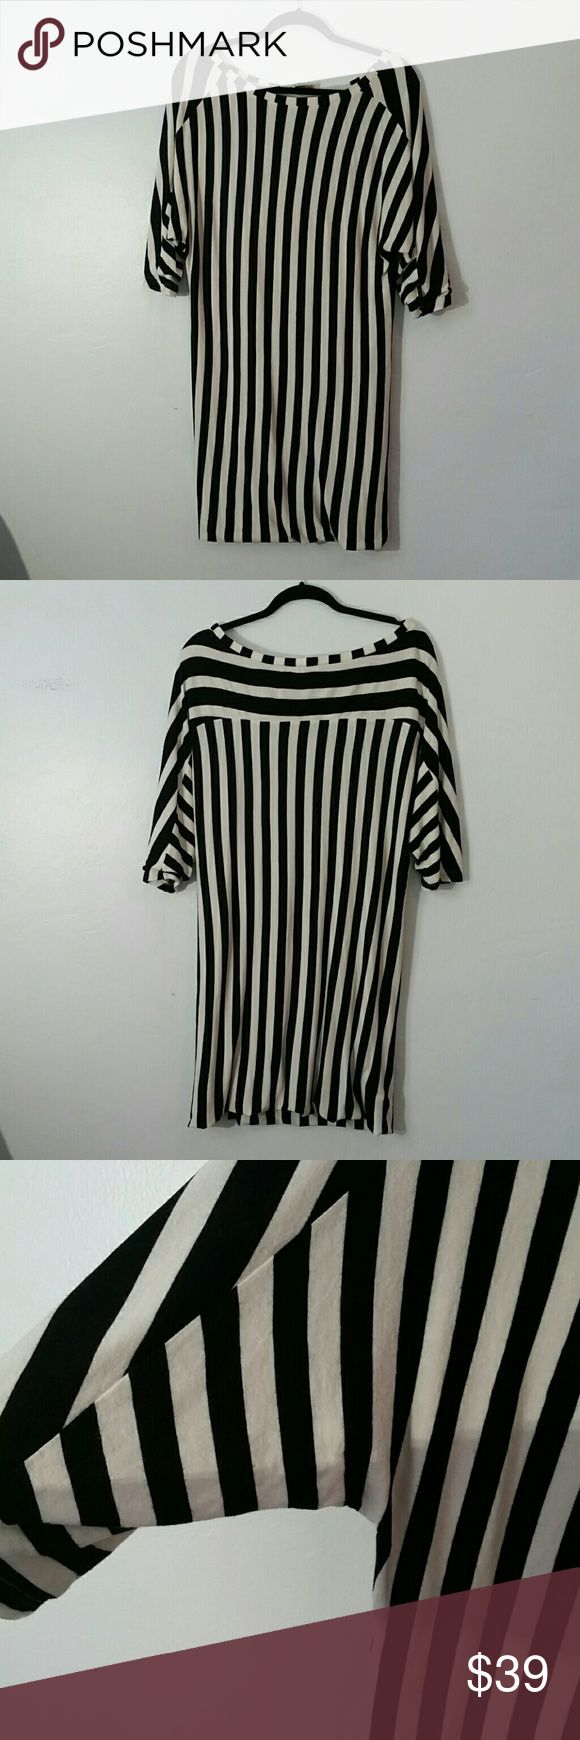 Diesel Striped Dress 3/4 dolman sleeves. Folded in hem. Contrasting stripe. Diesel logo tab on sleeve. Scoopneck. Fully lined. In very good condition. Size tag missing. Please refer to measurements.  Bust 20 Hip 18 Length 37 Diesel Dresses